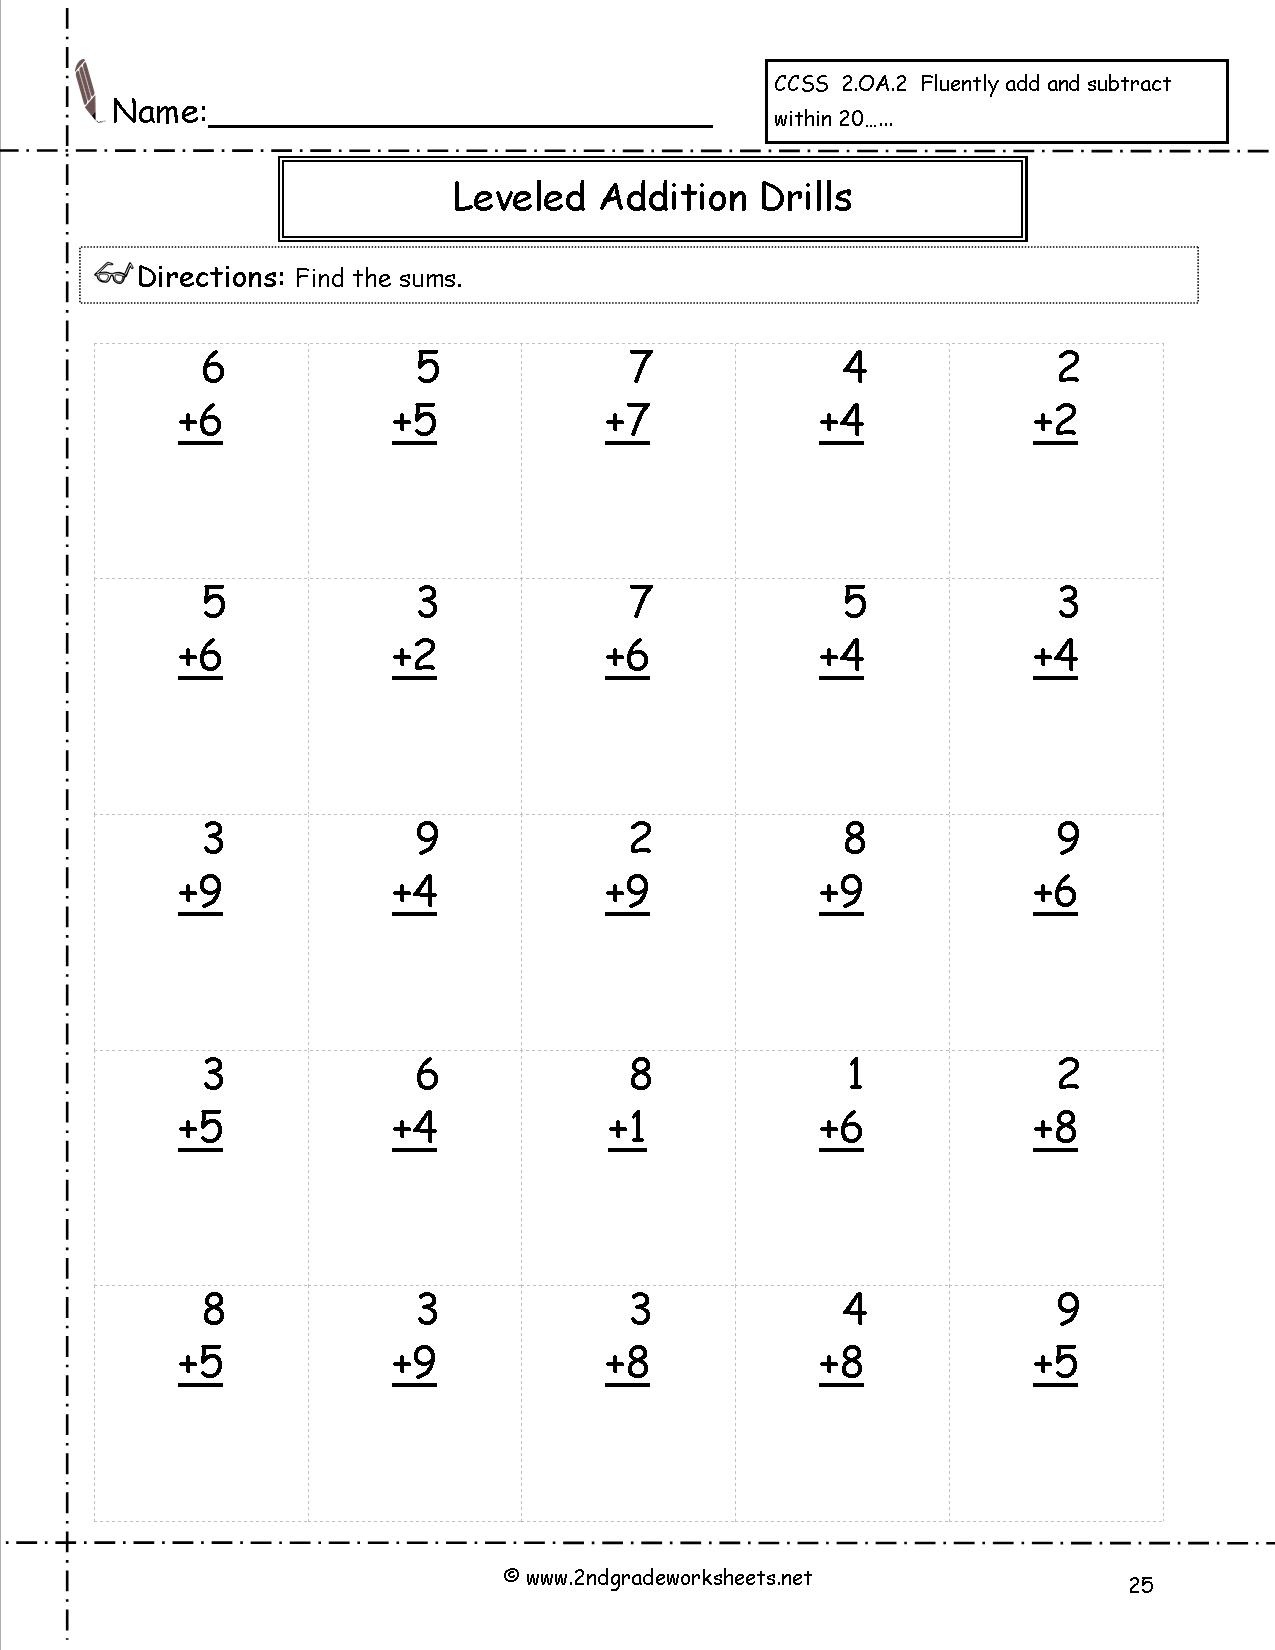 Free Math Worksheets And Printouts - Free Printable Second Grade Math